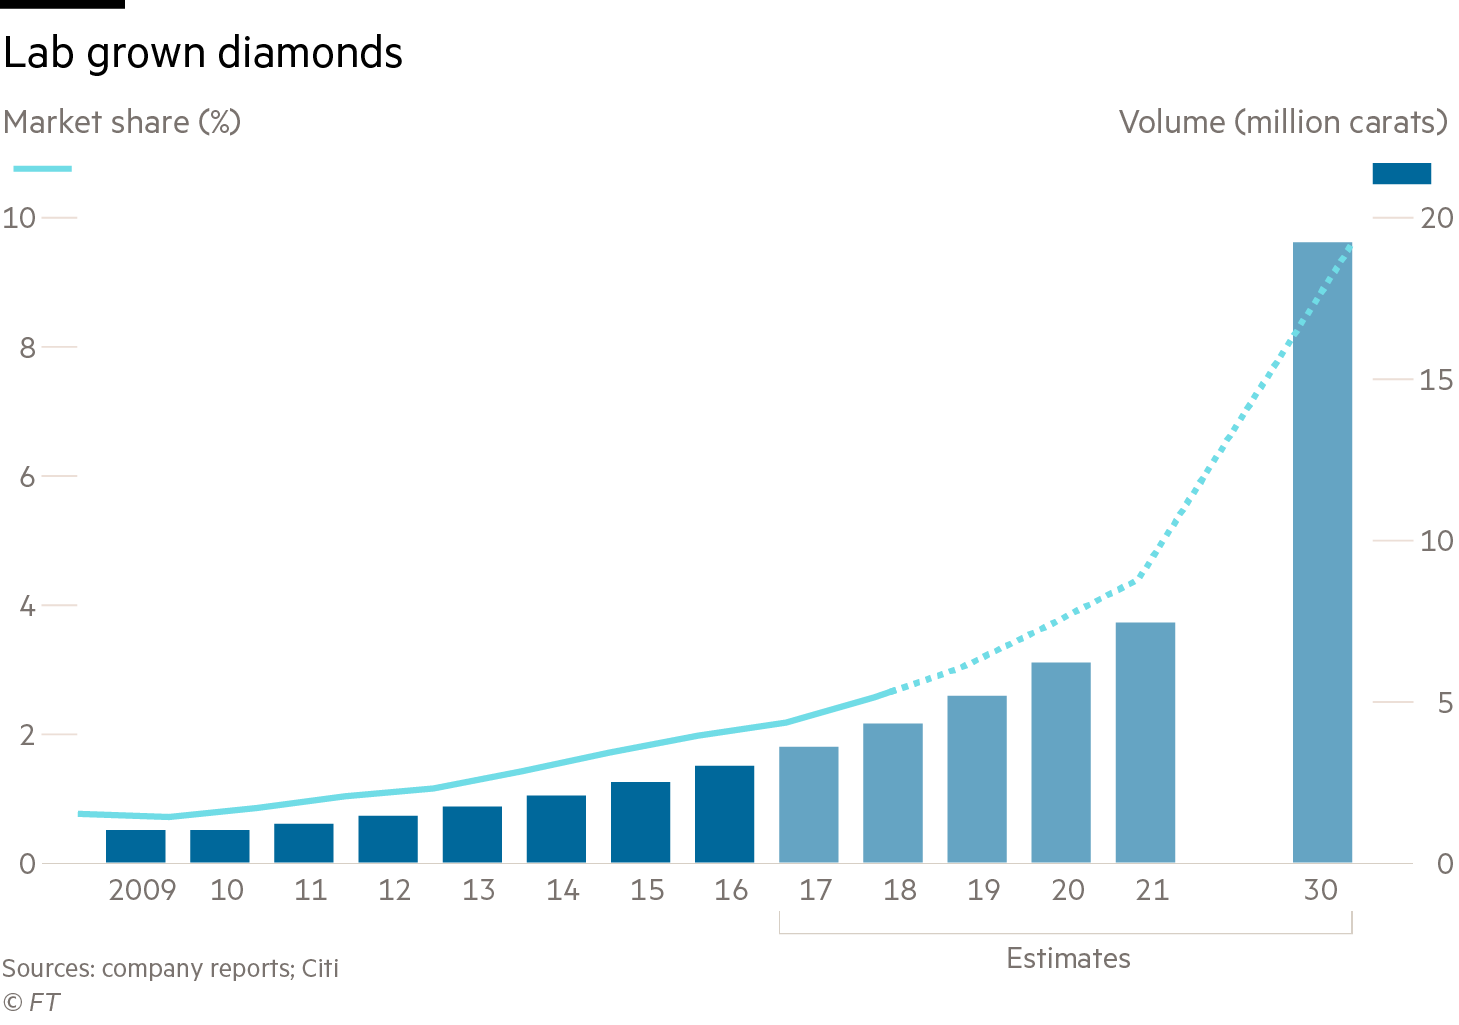 Chart showing the increase in market share and volume of lab grown diamonds